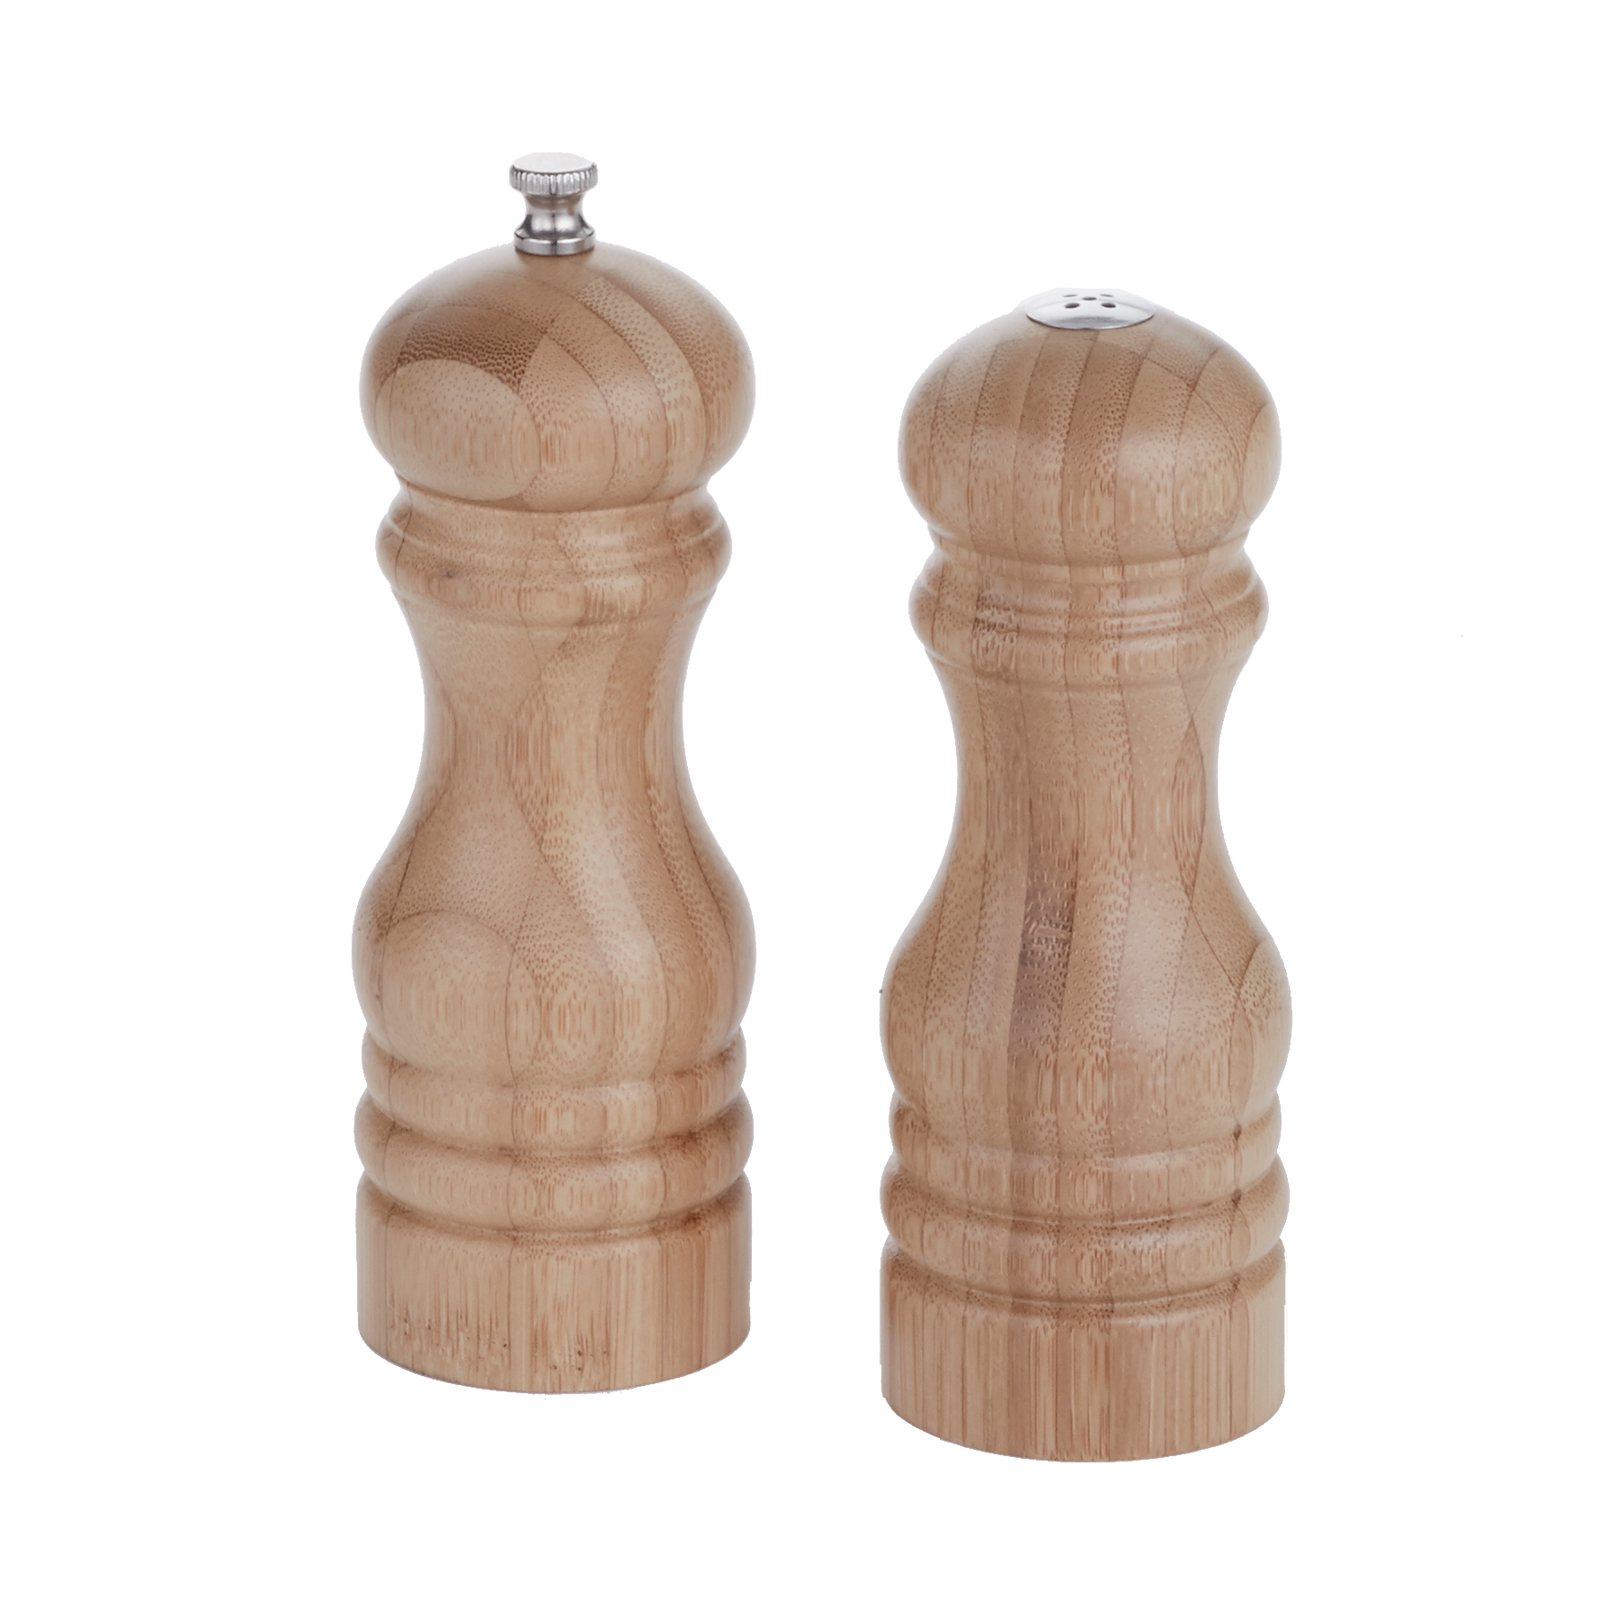 American Metalcraft PMSBA62 salt / pepper shaker & mill set